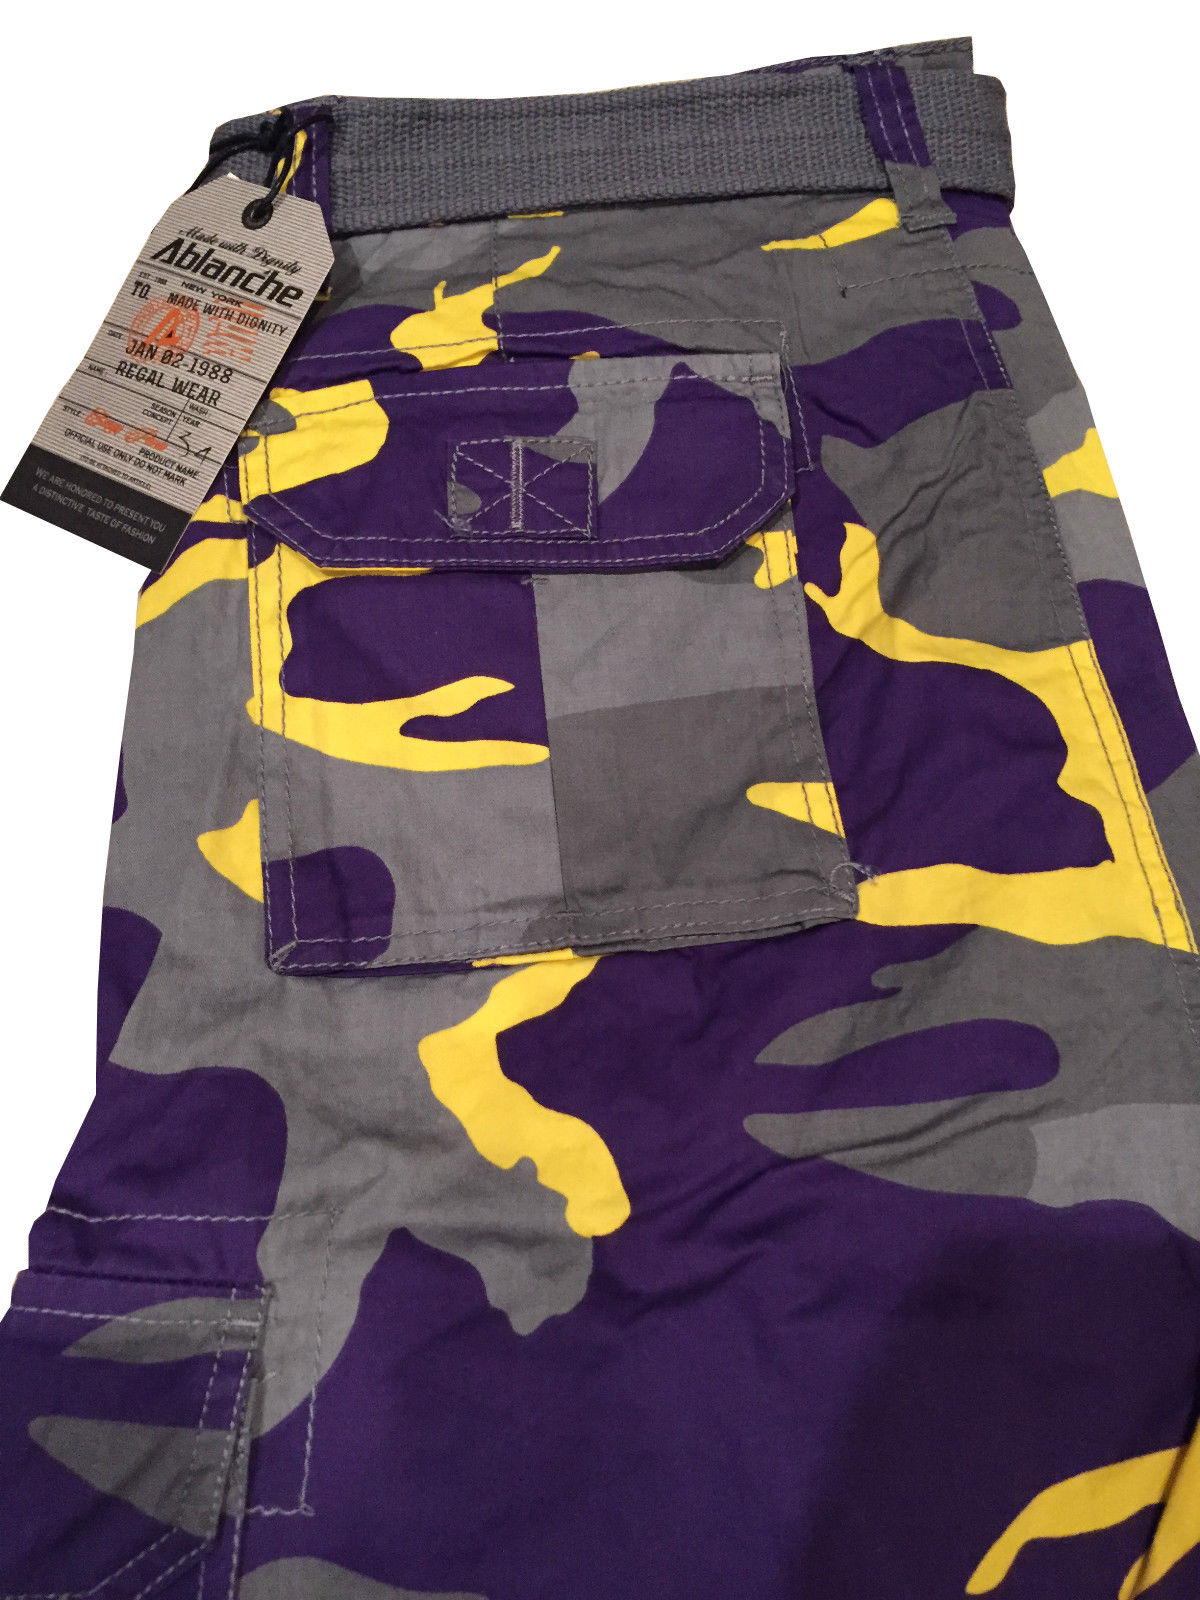 Men-039-s-Tactical-Combat-Military-Army-Cotton-Twill-Camo-Cargo-Shorts-With-Belt thumbnail 13